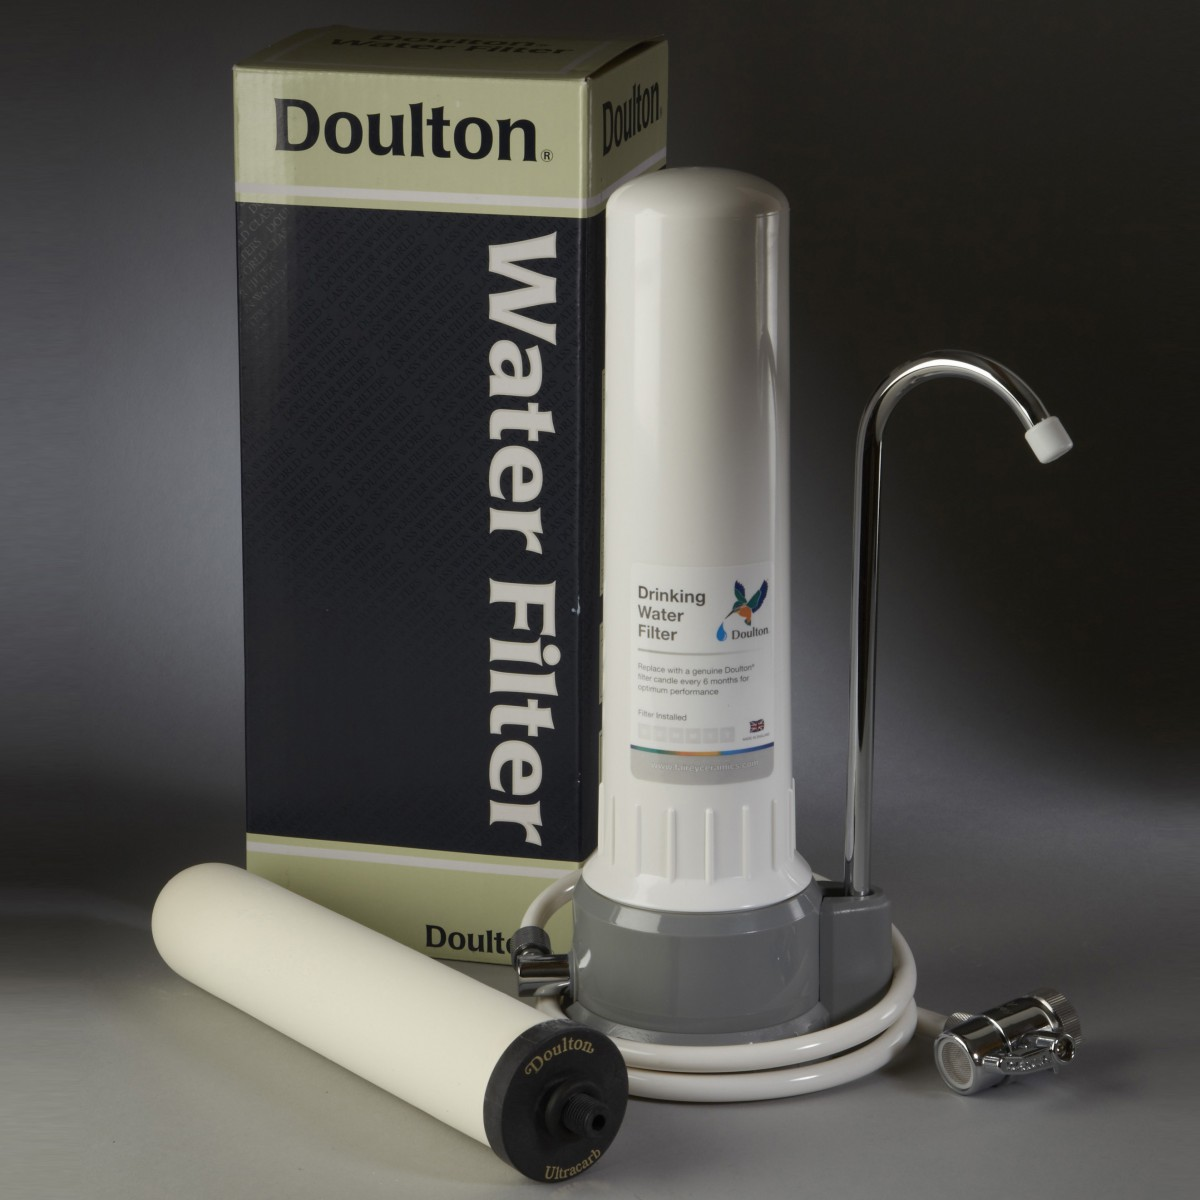 Doulton W9331032 Ultracarb Countertop Filter System